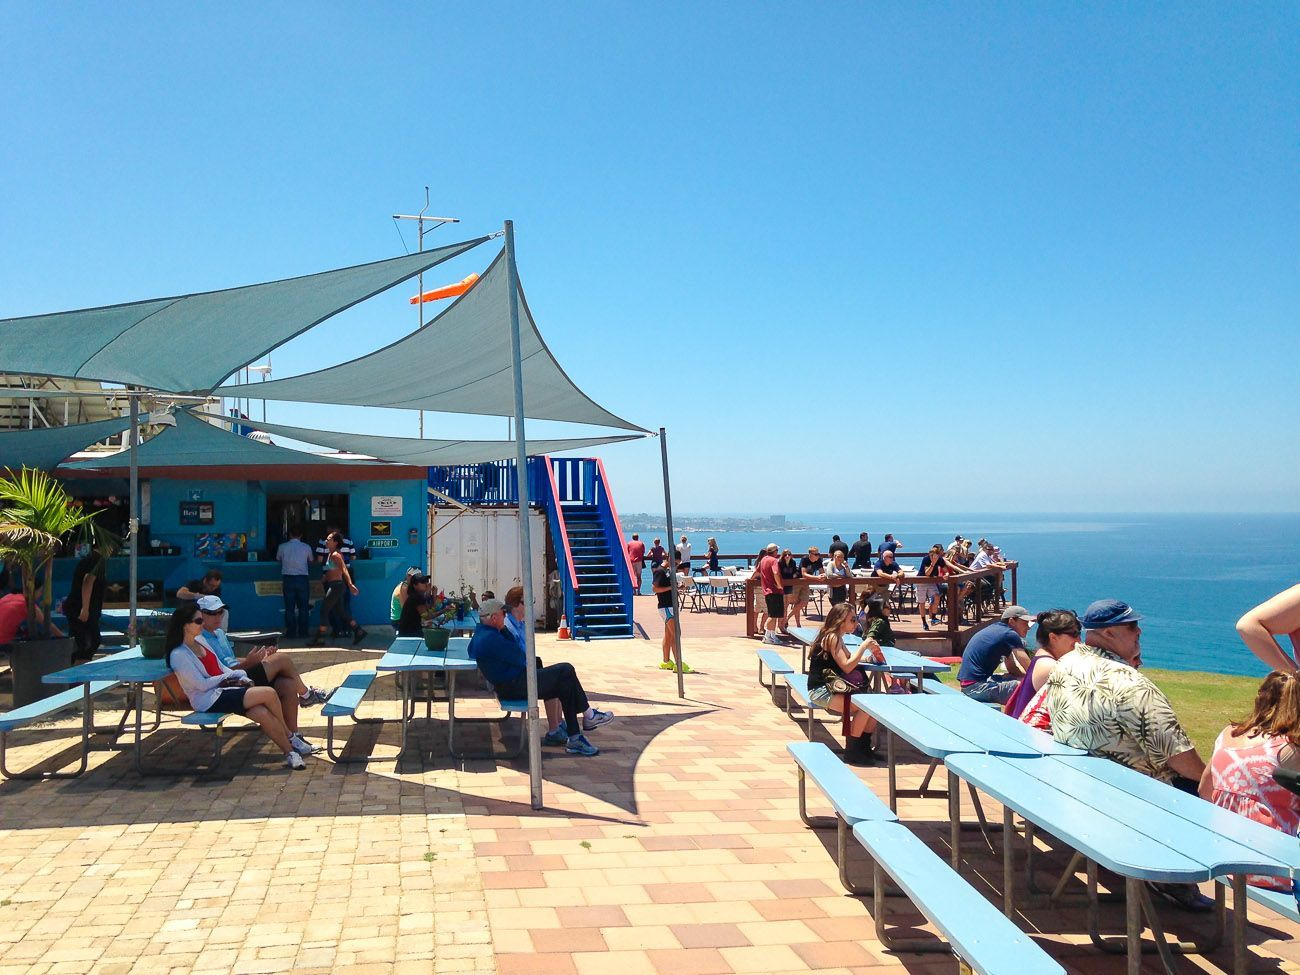 The Cliffhanger Cafe at the Torrey Pines Gliderport